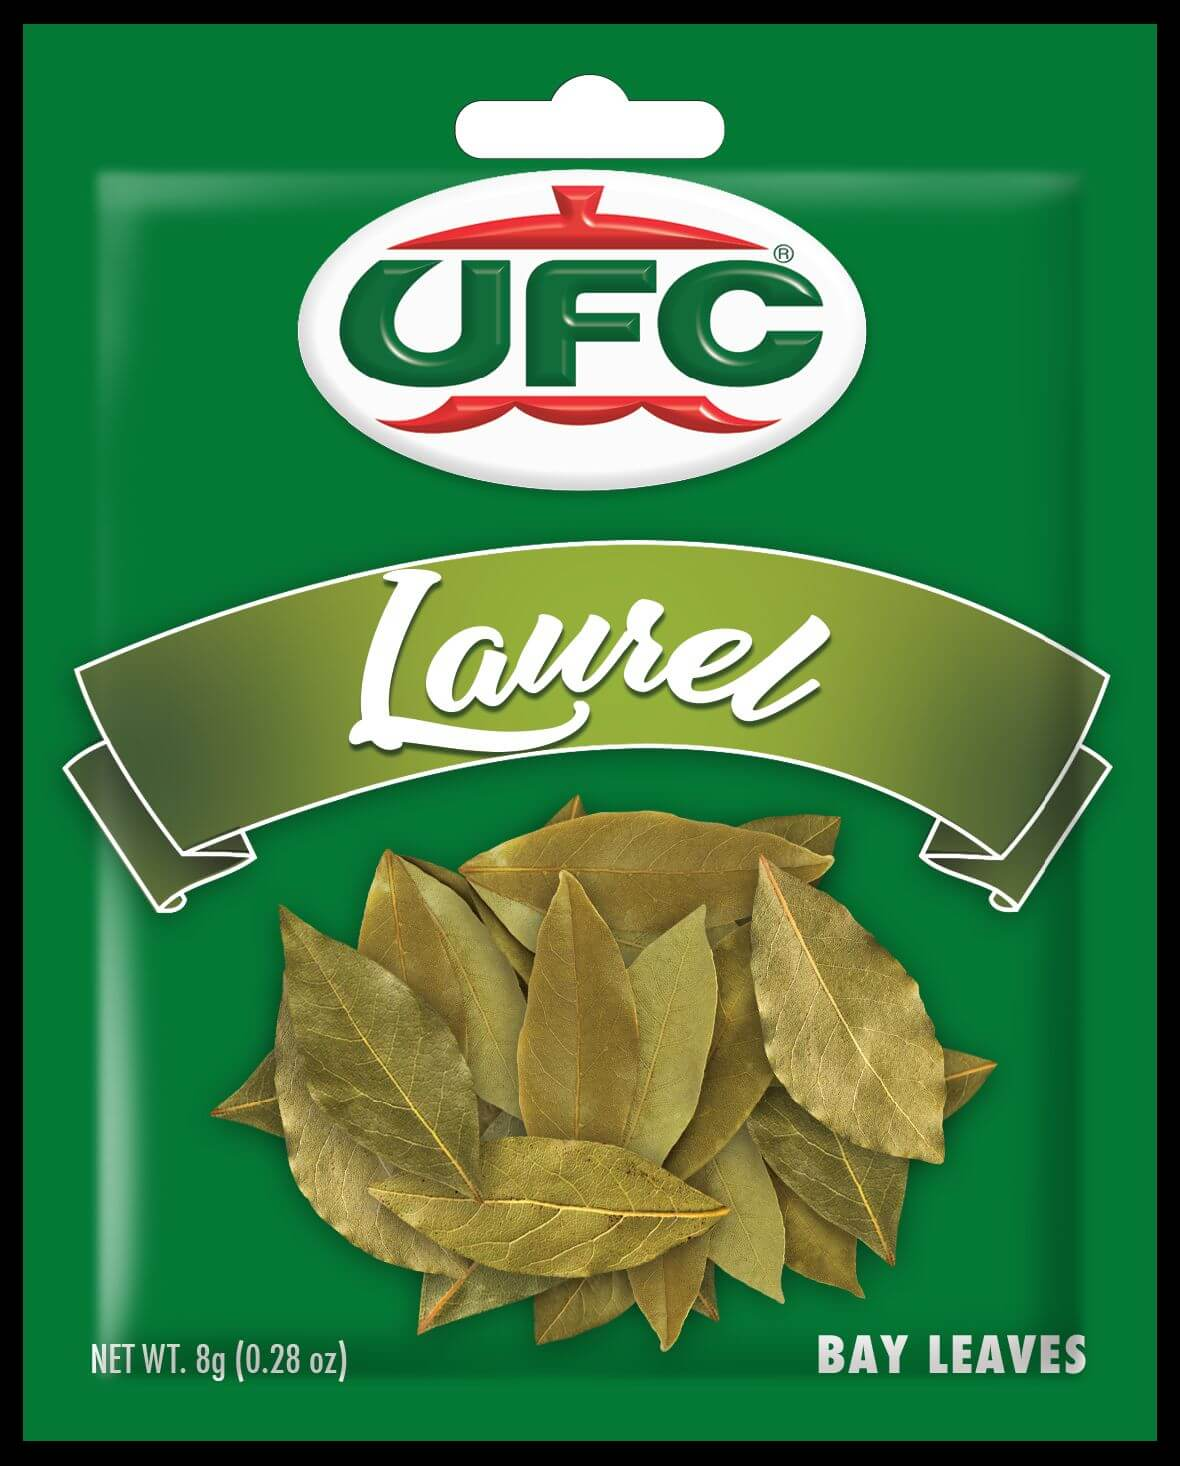 UFC Bay Leaves 8g